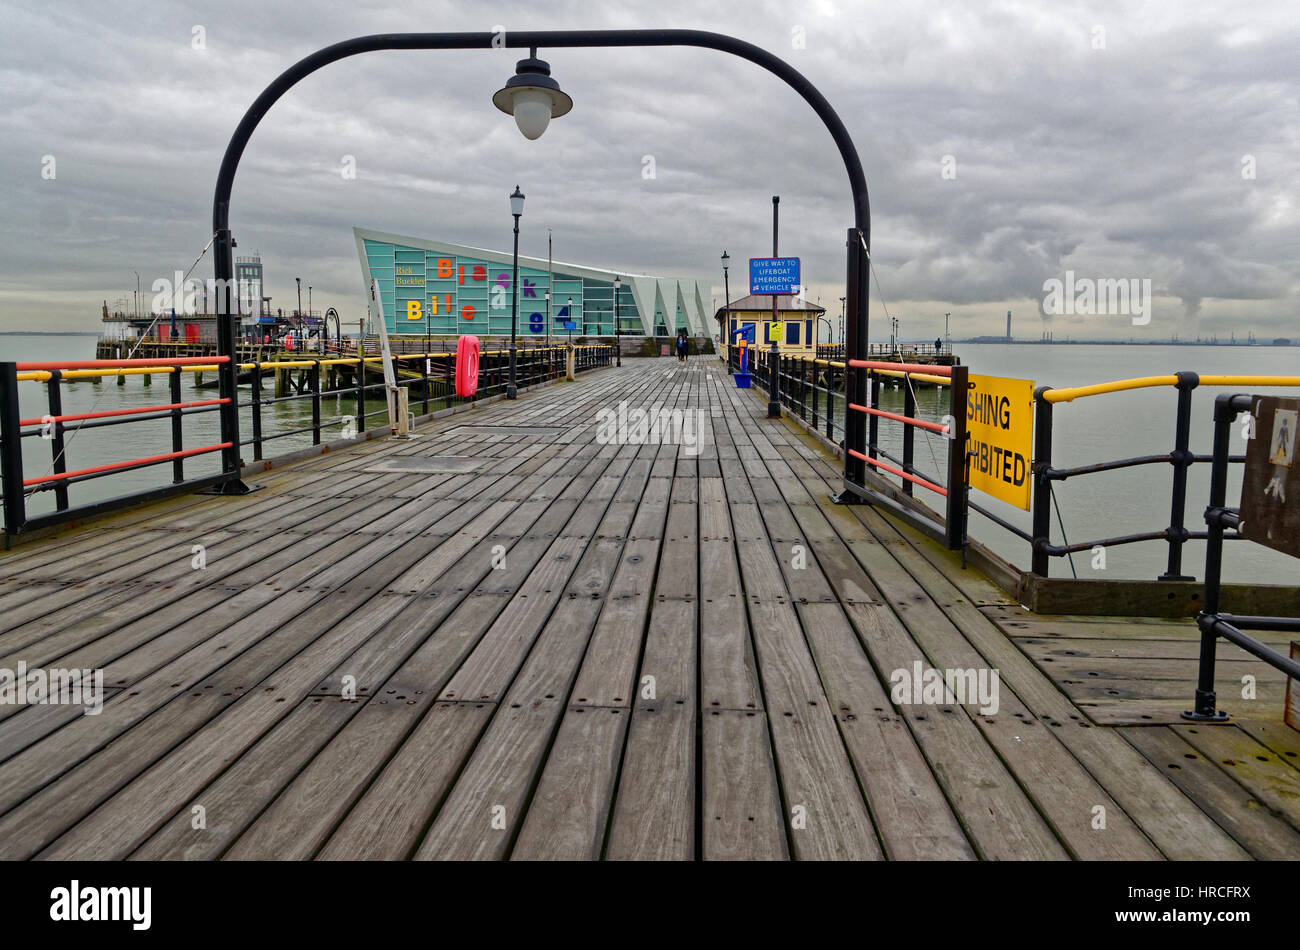 Southend Pier, The Longest Pier in the World, Southend-on-Sea, Essex, Britain - Stock Image